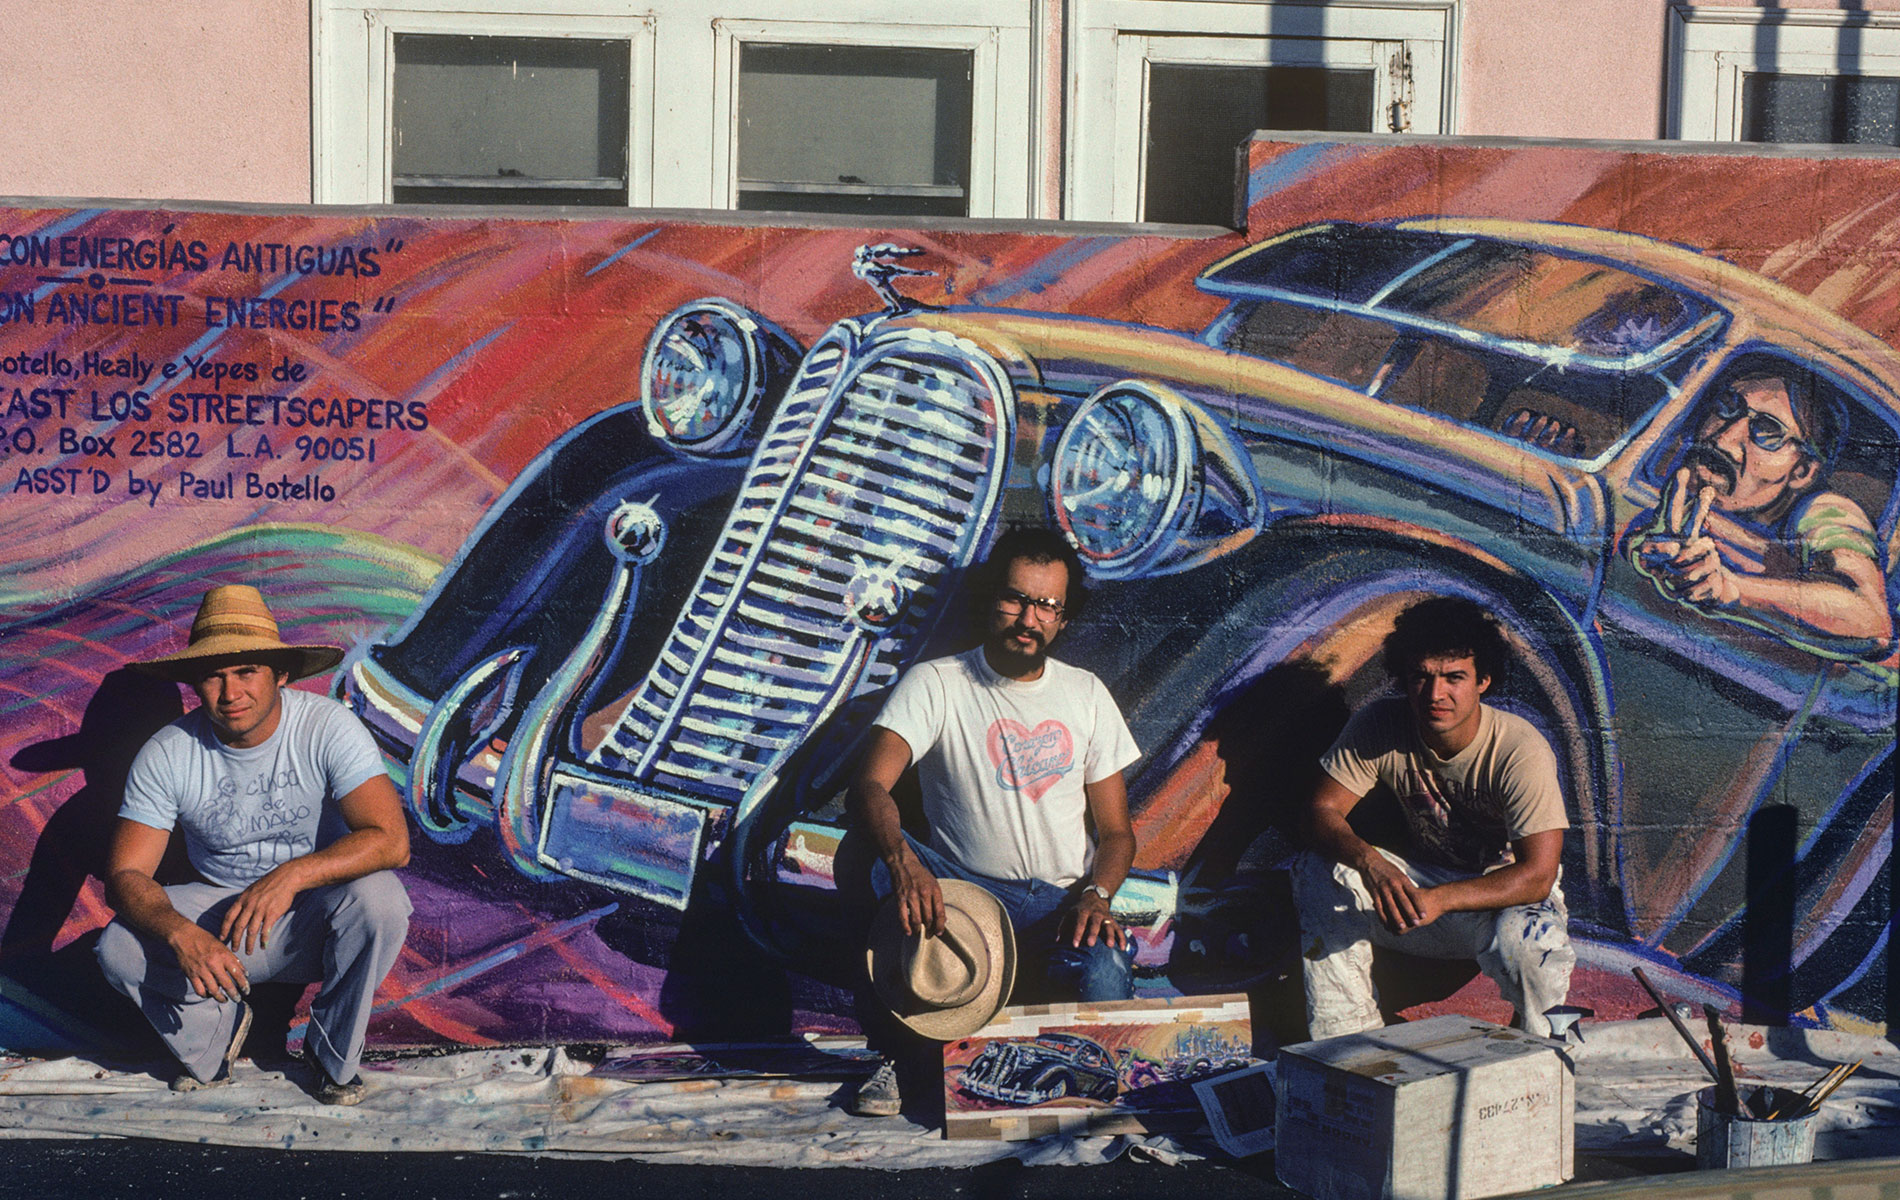 <h1>East Los Streetscapers Wayne Healy, David Botello, and George Yepes (<em>left to right</em>) complete <em>Filling Up on Ancient Energies</em>, 1980</h1>